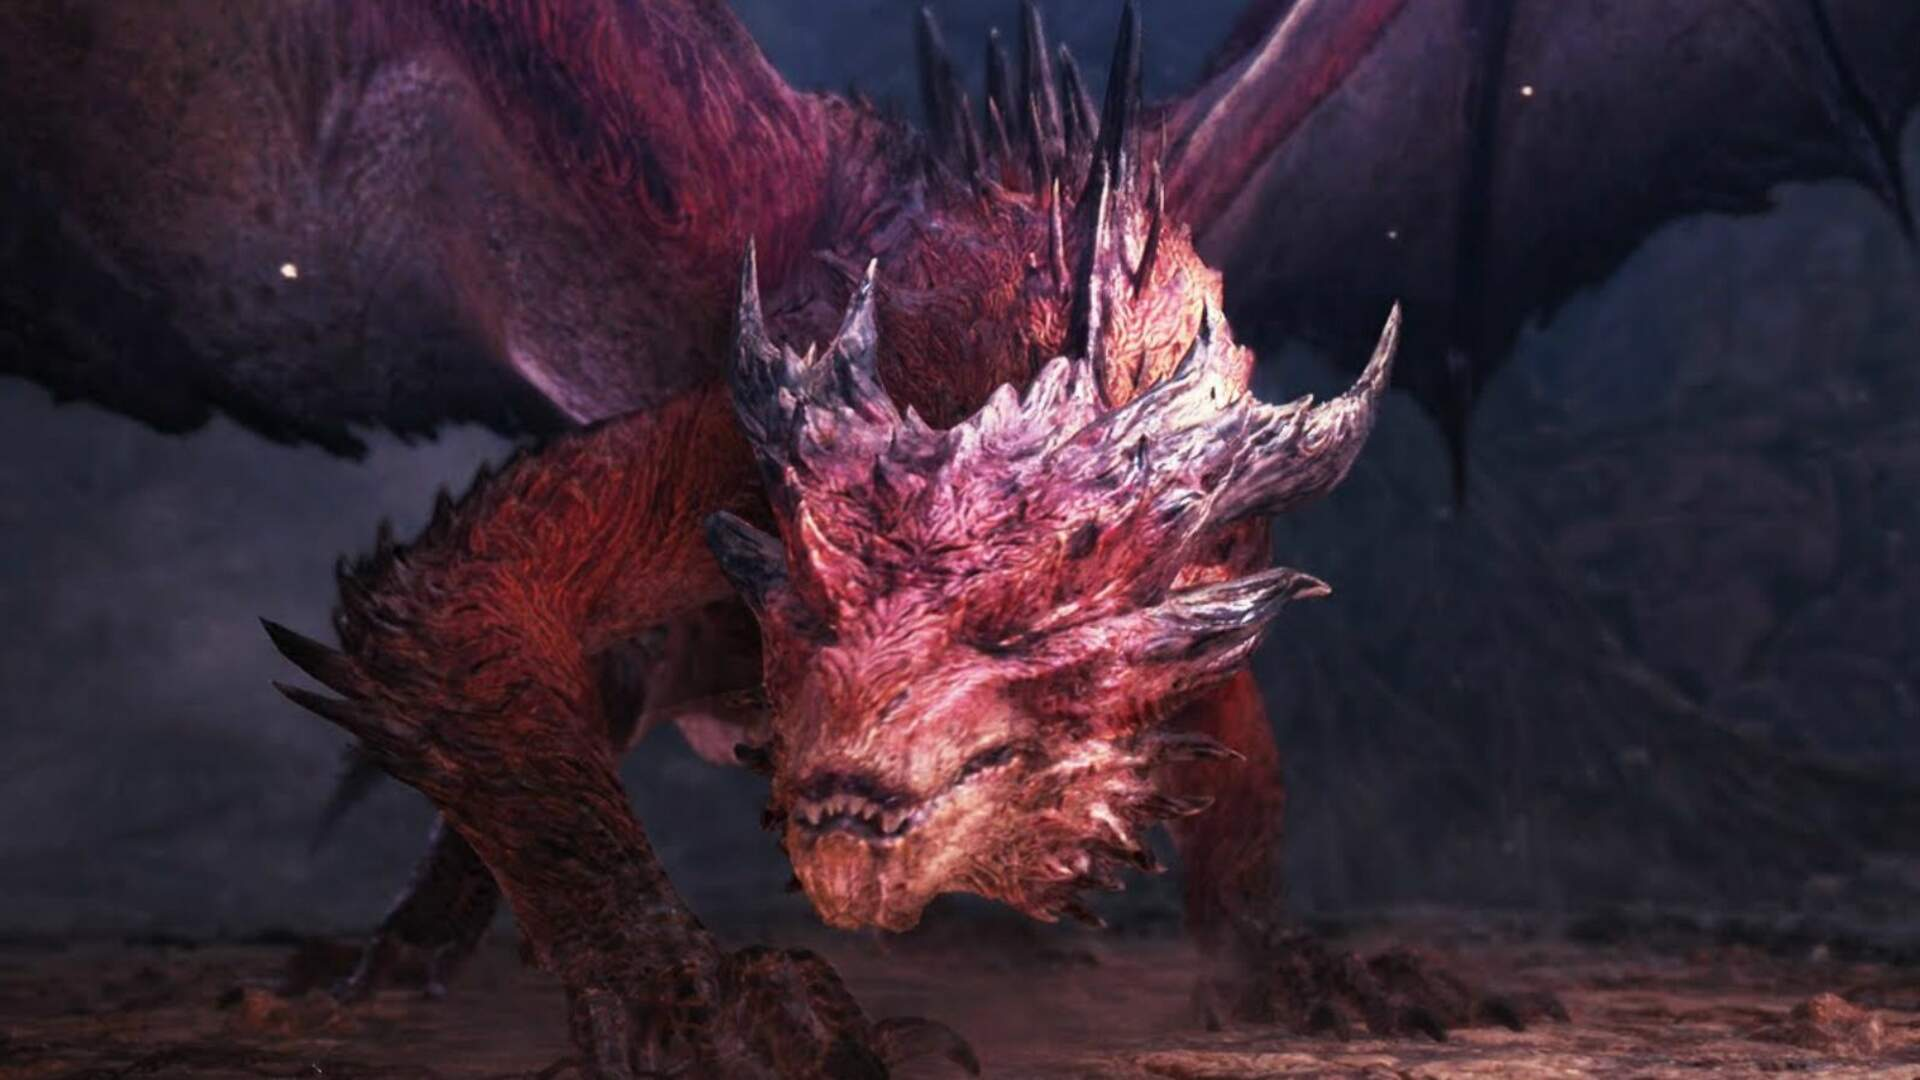 Monster Hunter World: Iceborne PC Players Can Now Fight Stygian Zinogre and Safi'jiiva